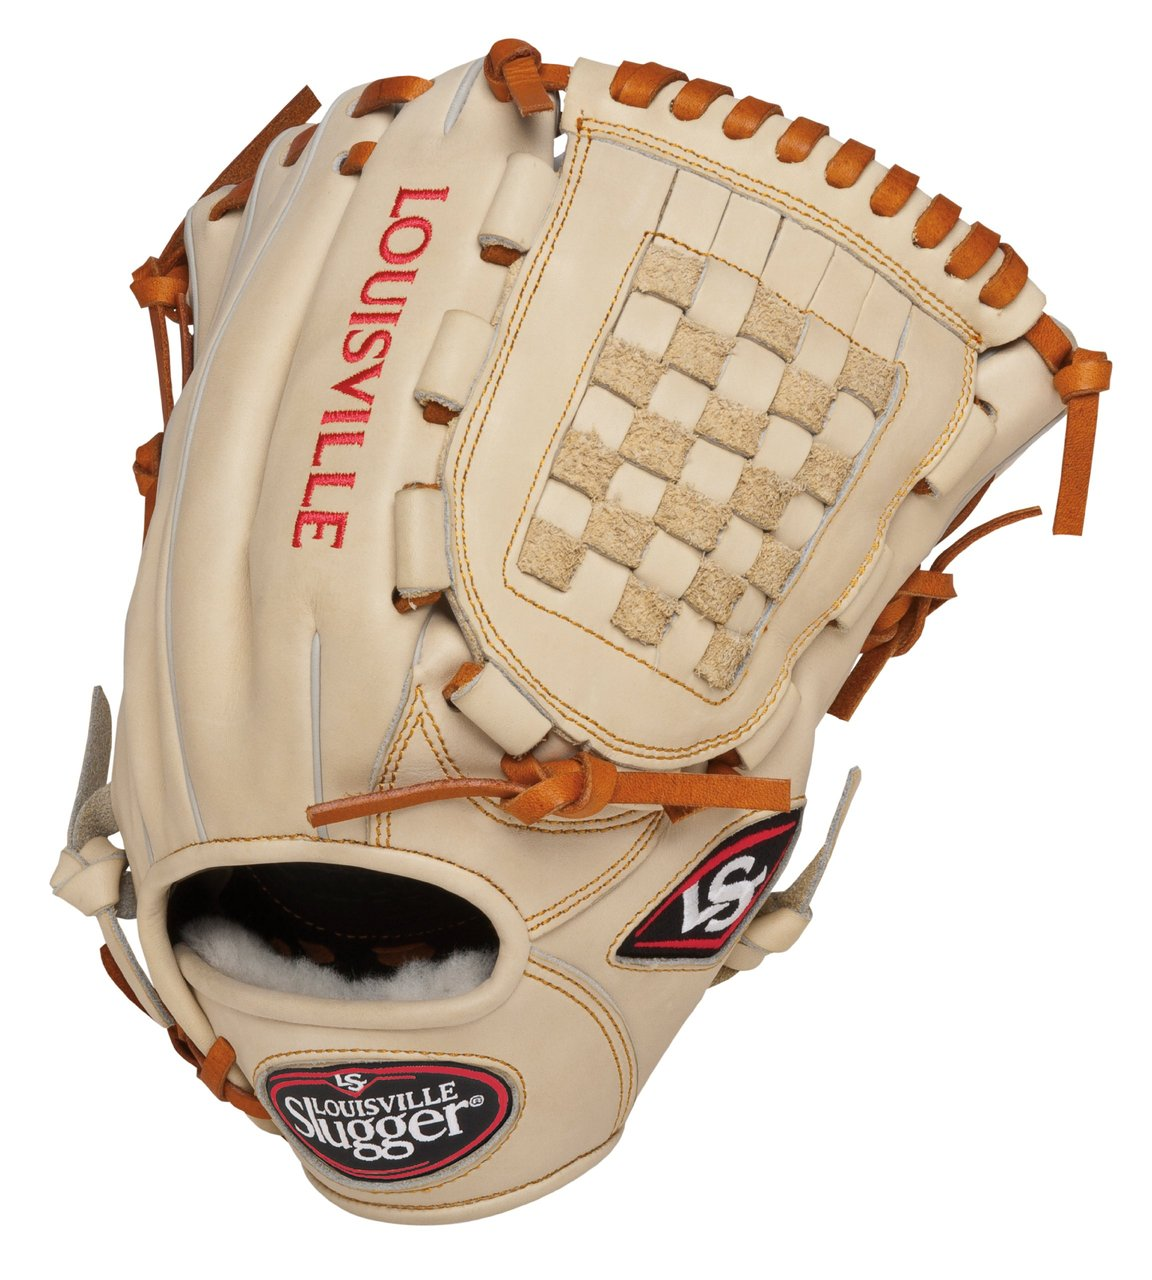 louisville-slugger-pro-flare-12-inch-baseball-glove-right-handed-throw FGPF14-CR120-Right Handed Throw Louisville 044277006624 Louisville Slugger Pro Flare 12 inch Baseball Glove Right Handed Throw